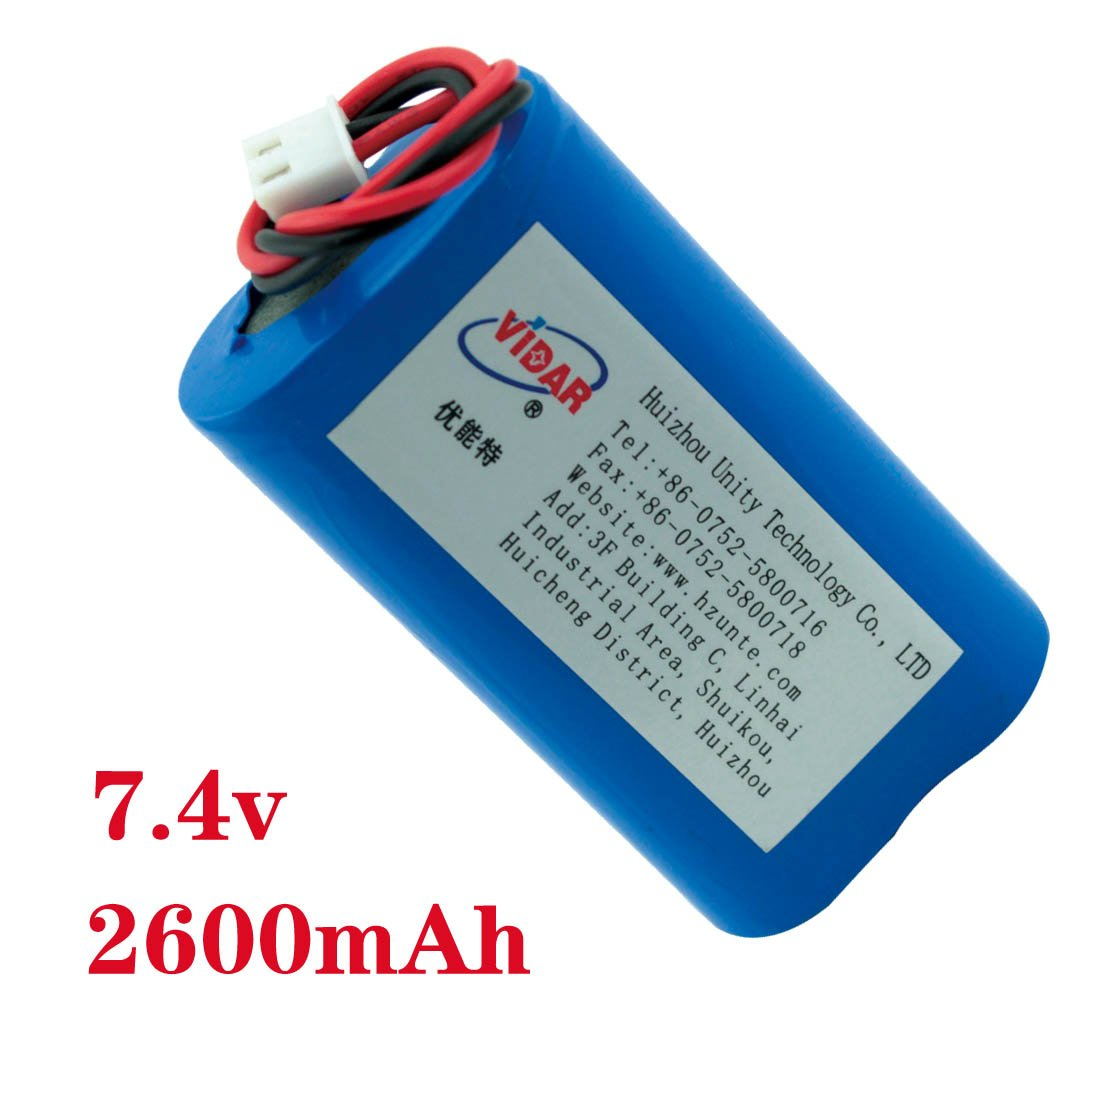 High Capacity 7.4V 2600MAH Rechargeable Battery Packs Power Bank for Toys Cameras Game Players Huizhou Unity Electronic Technology CO. Ltd